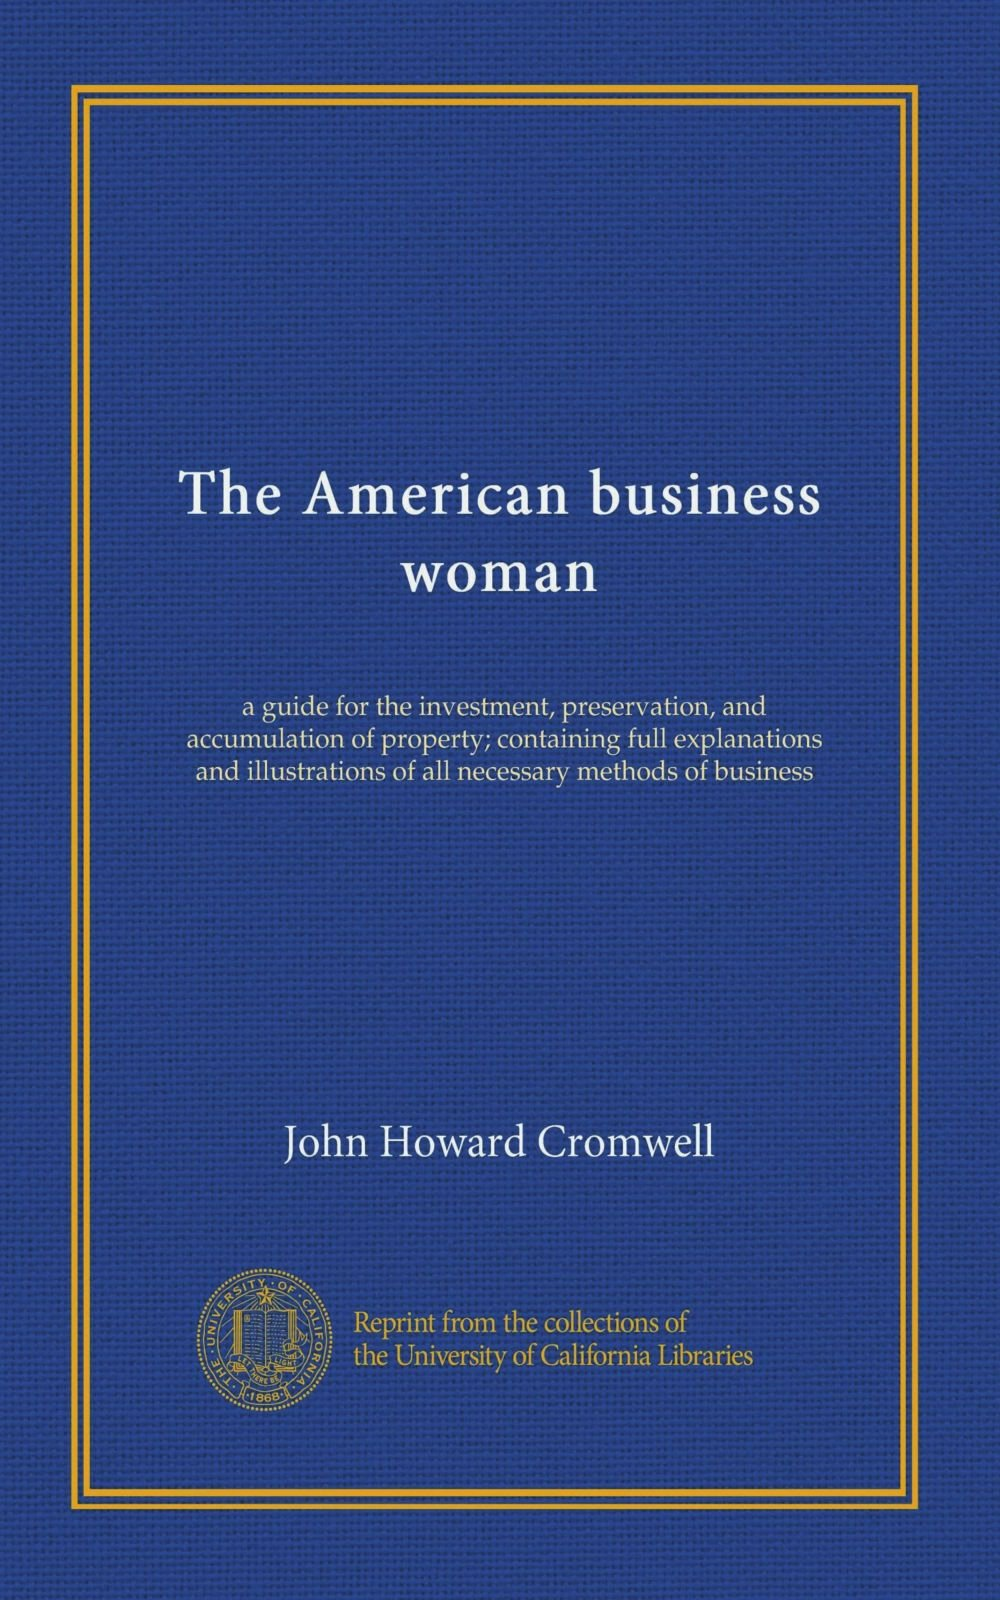 The American business woman: a guide for the investment, preservation, and accumulation of property; containing full explanations and illustrations of all necessary methods of business pdf